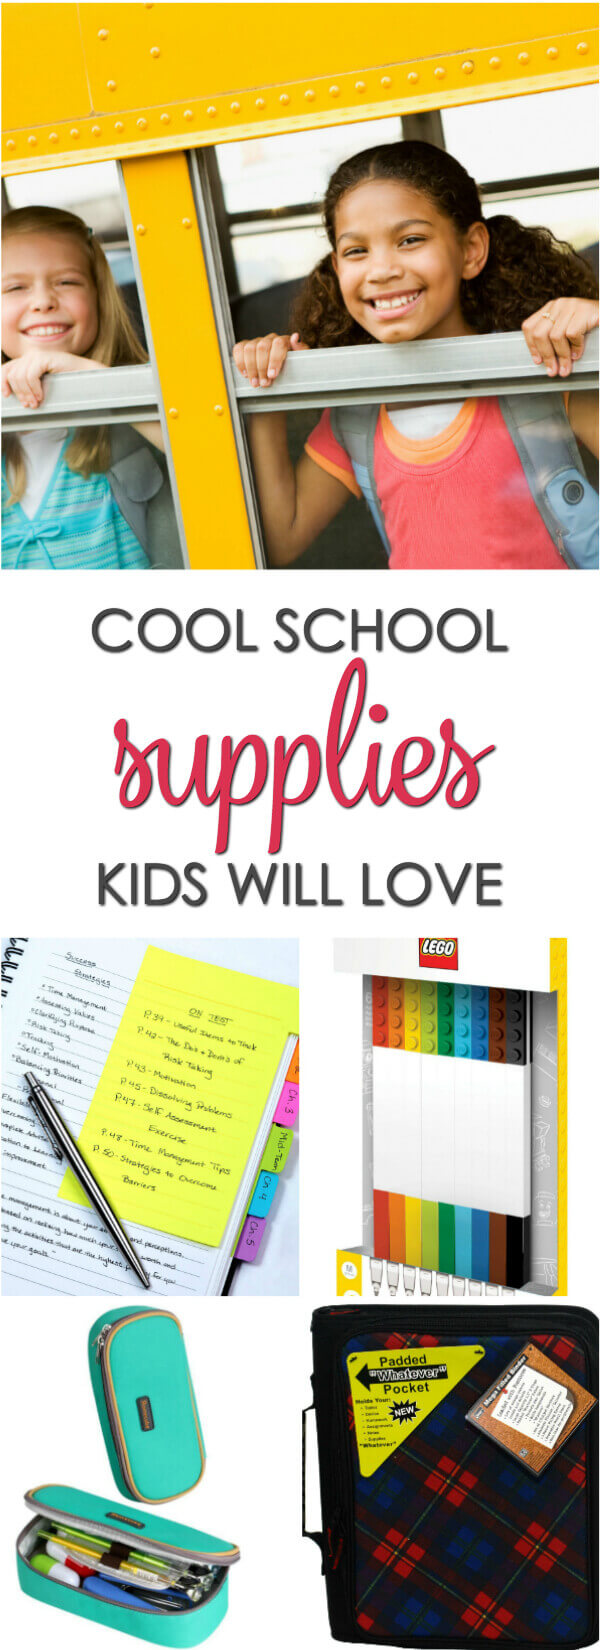 Cool back school supplies that your kids will love - these fun online school supplies make shopping easy